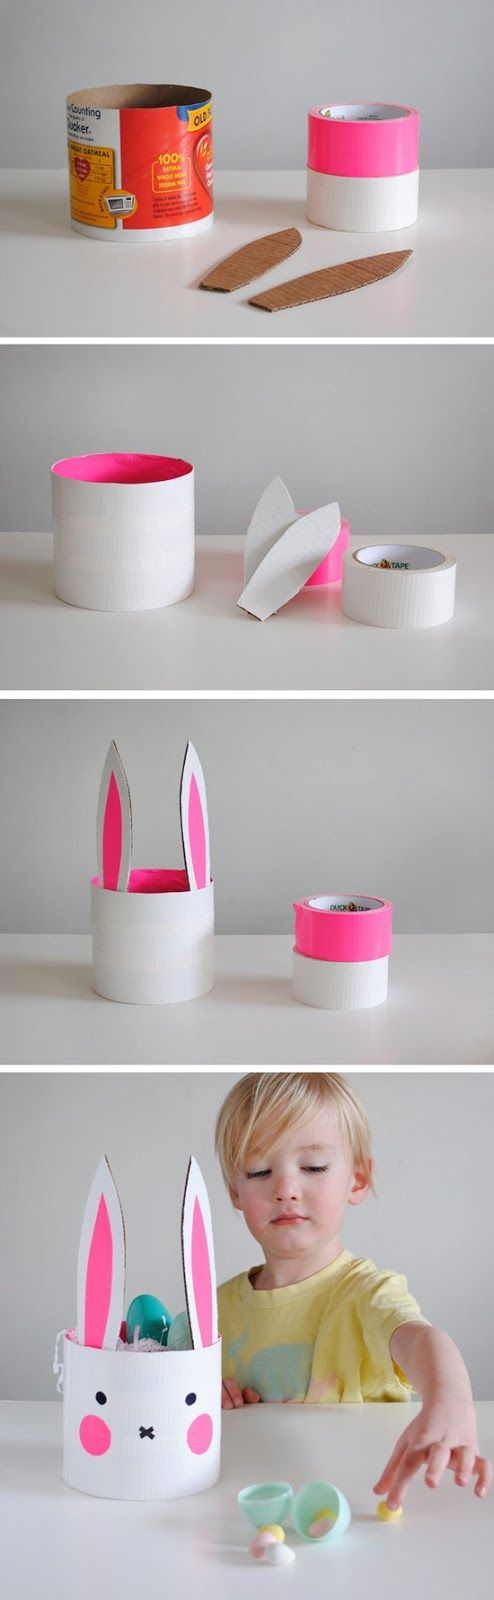 mommo design : 8 SWEET DIY IDEAS